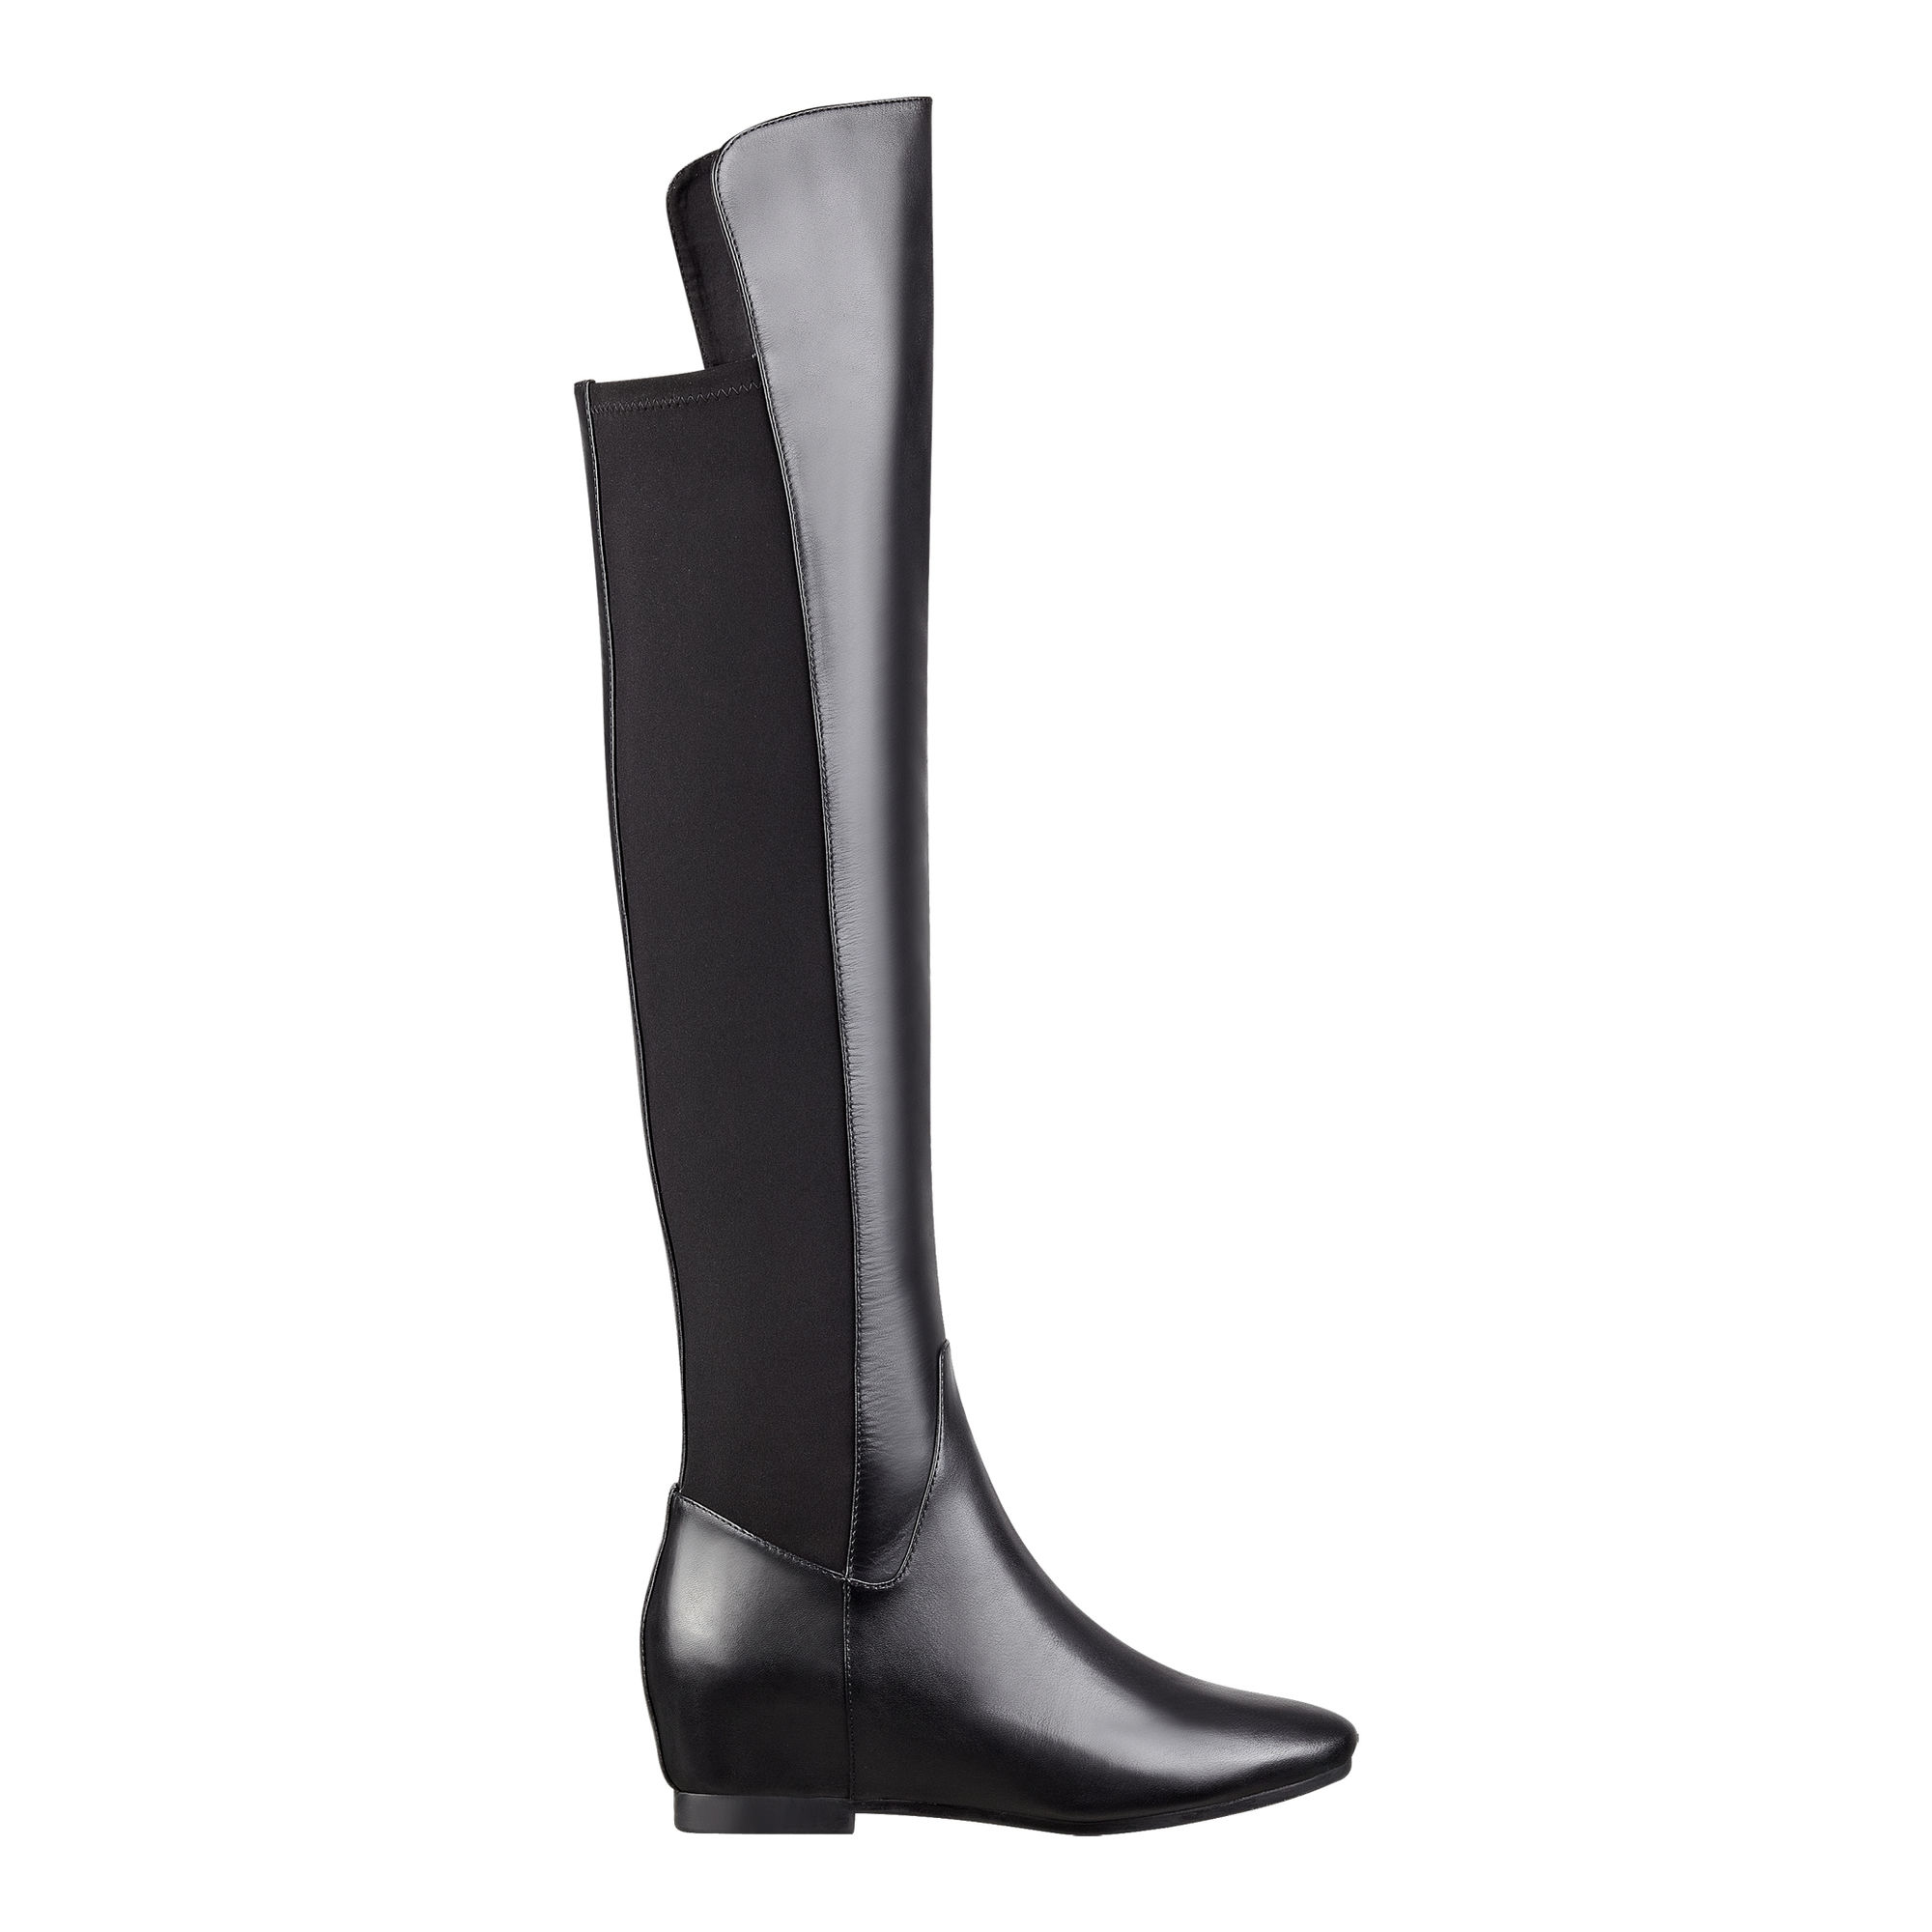 38ec3ec26e9 Lyst - Nine West Tiberia Leather Over-The-Knee Boots in Black